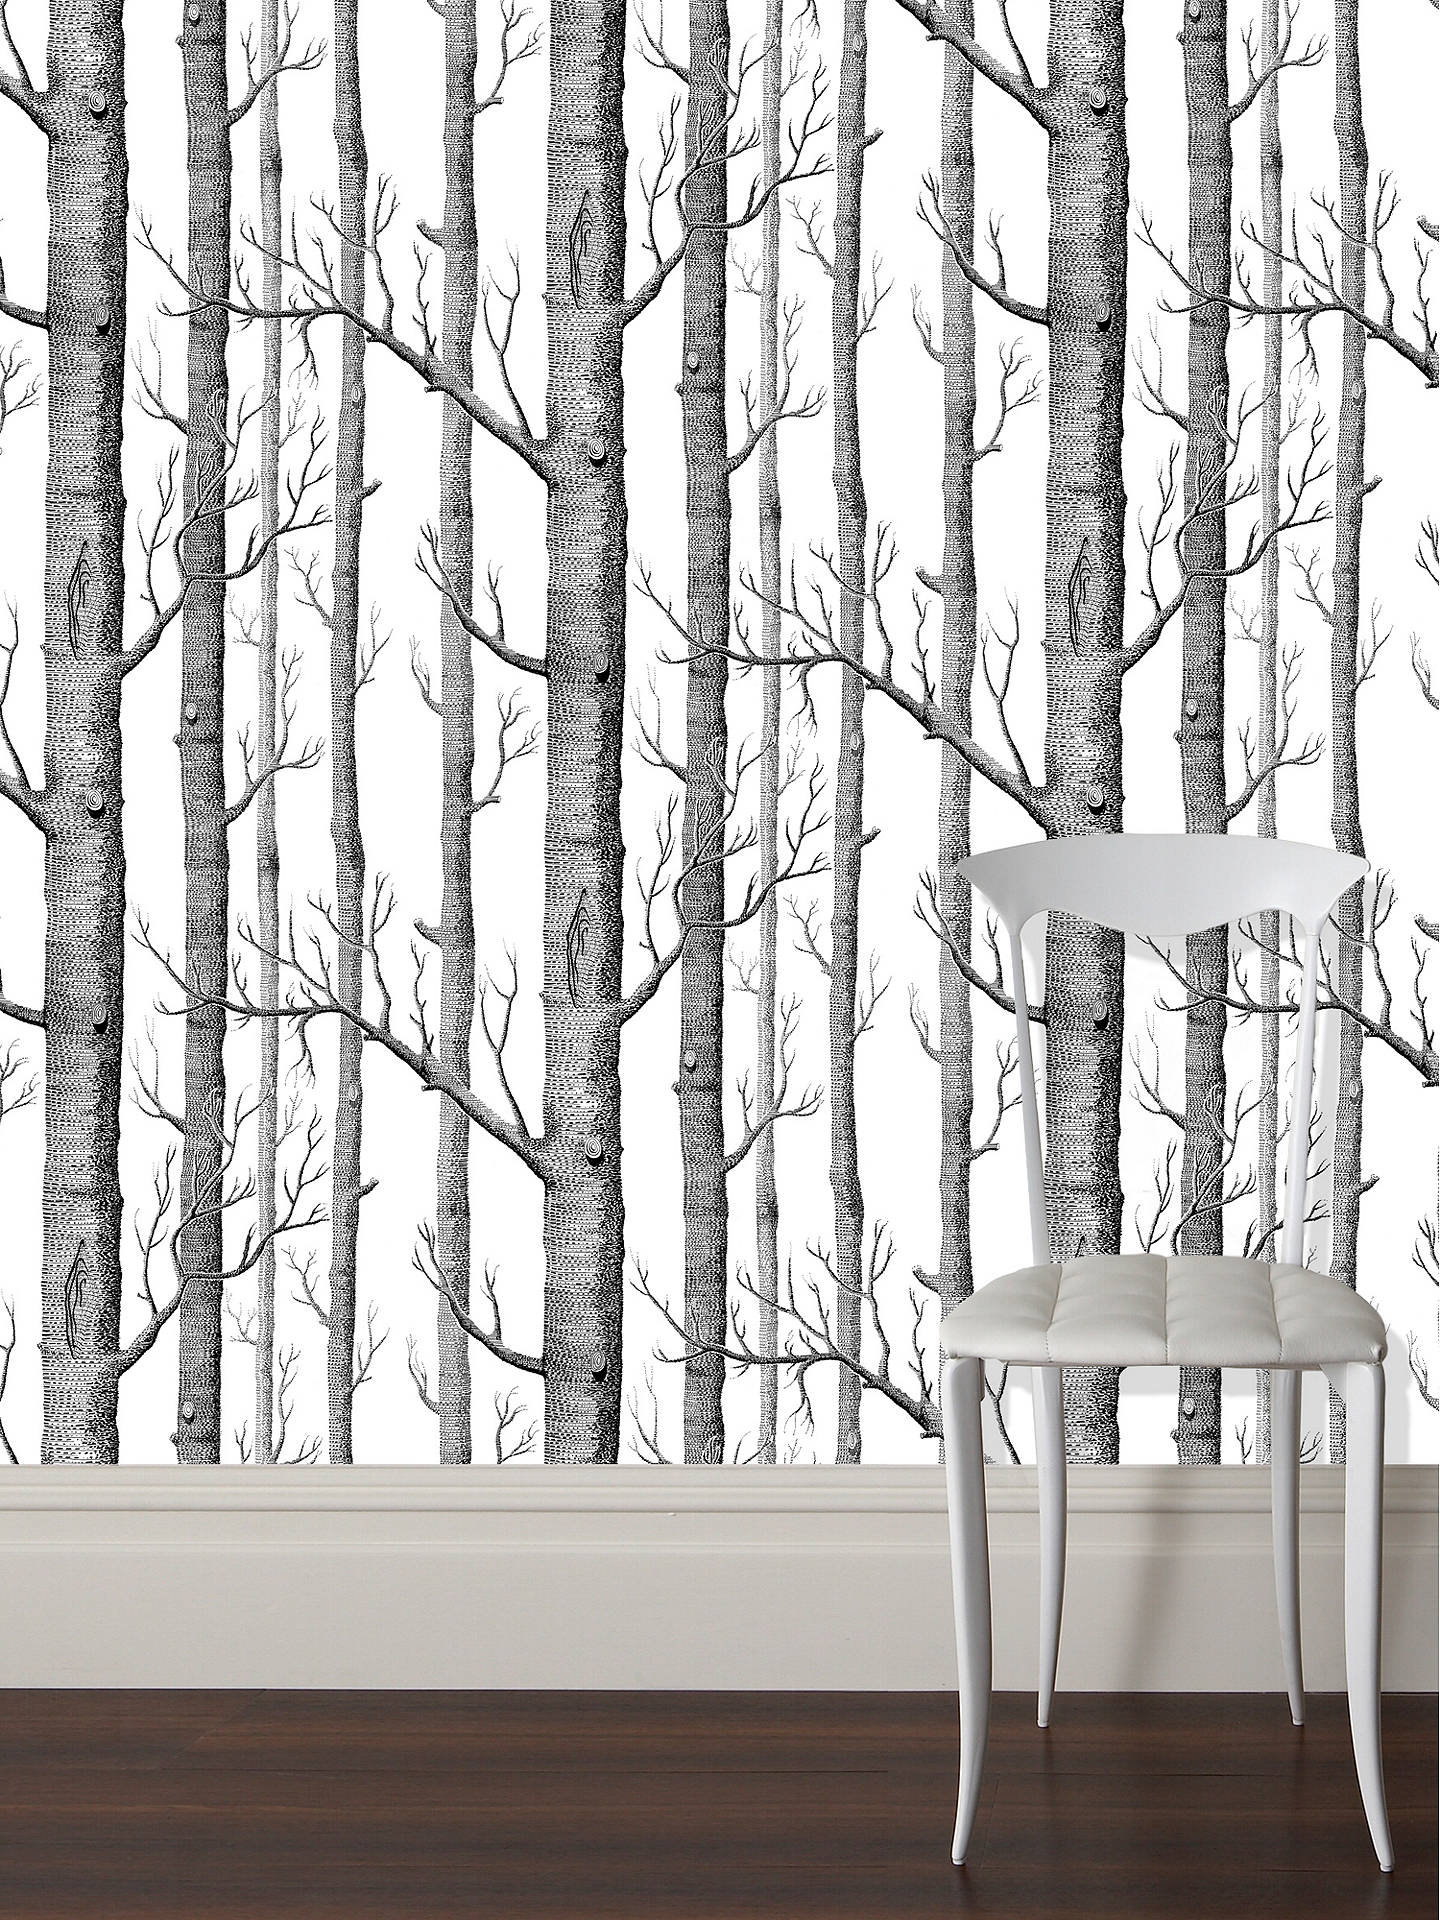 Cole Son Woods Wallpaper at John Lewis Partners 1440x1920